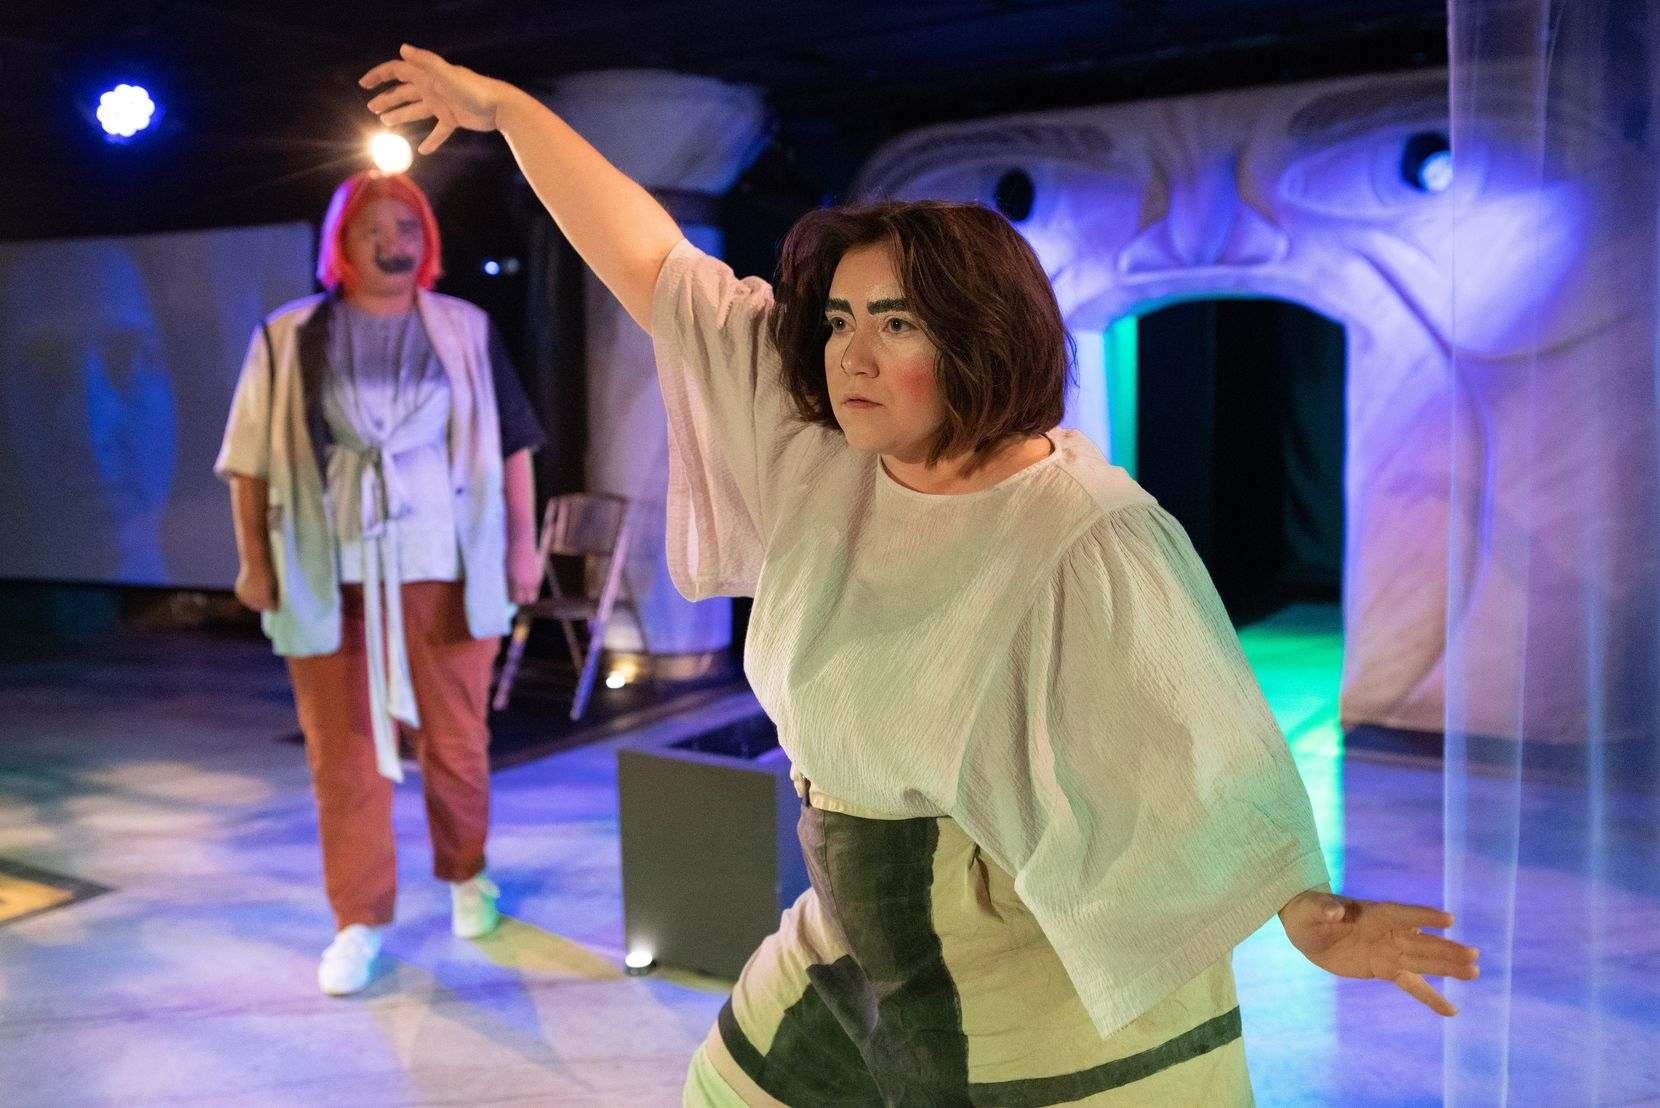 """Celeste Perez, right, as Choriko, frequently undulates from the hips in """"Stronger Than Arms,"""" as if she knows something we don't."""